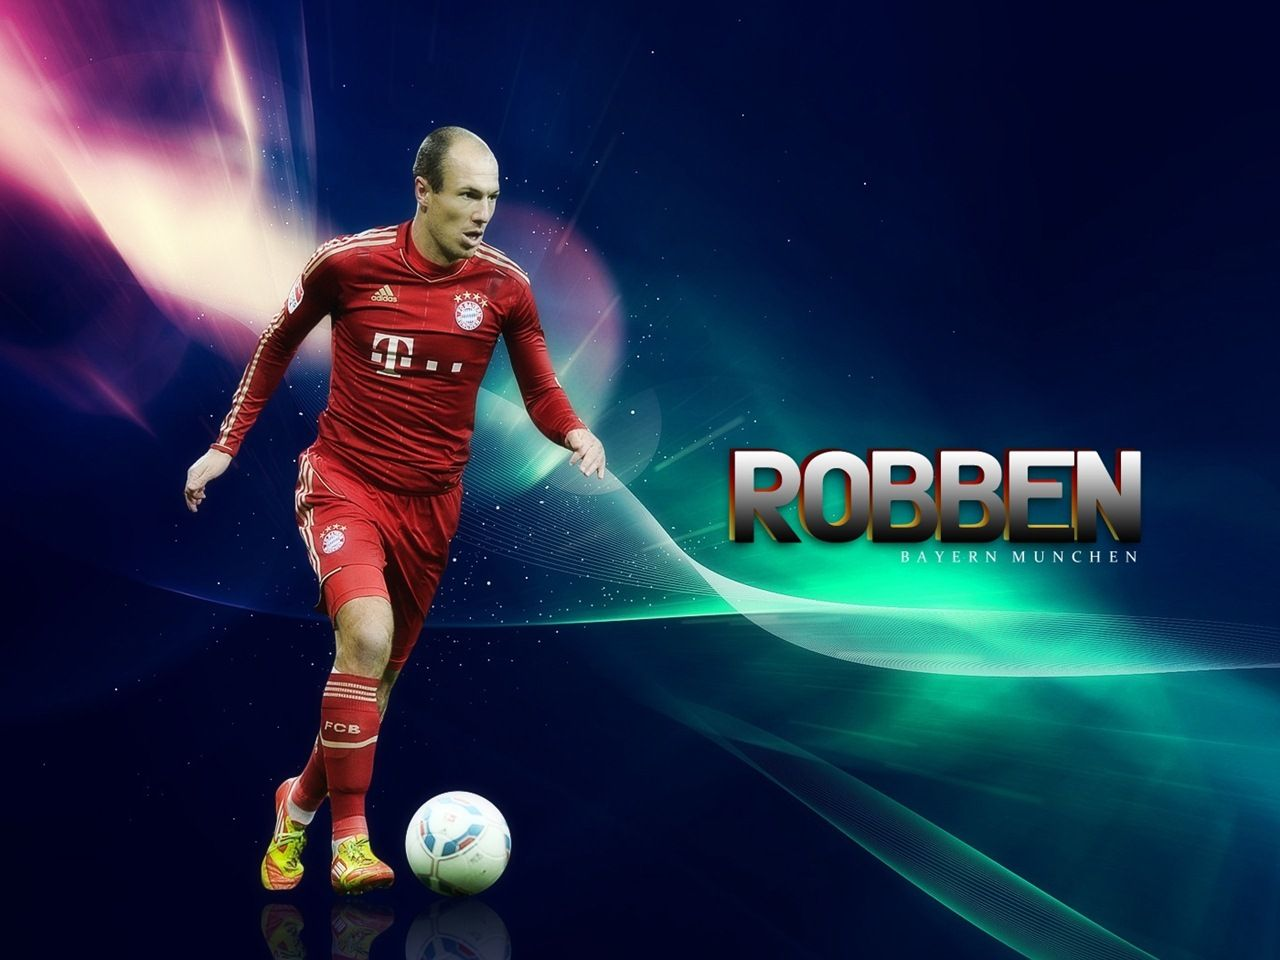 Download wallpapers arjen robben 2013 places to visit pinterest download wallpapers arjen robben 2013 voltagebd Choice Image